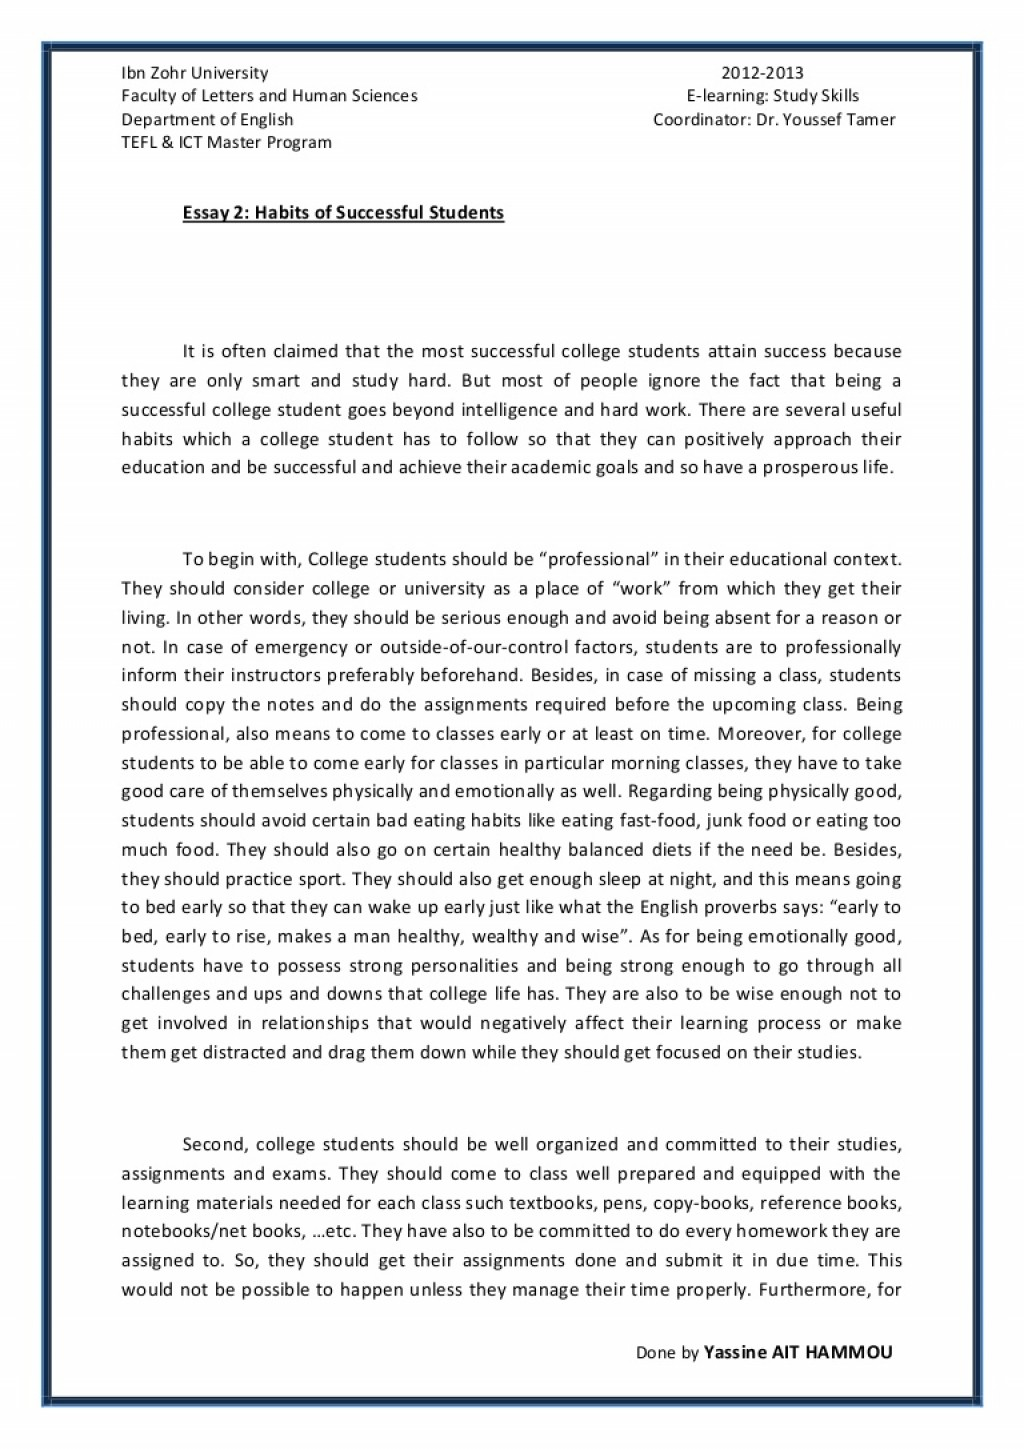 005 Essay About Good Student Essay2 Succesfulcollegestudentshabitsbyyassineaithammou Phpapp01 Thumbnail Rare Qualities Of Students On Ideal In Punjabi Definition Large